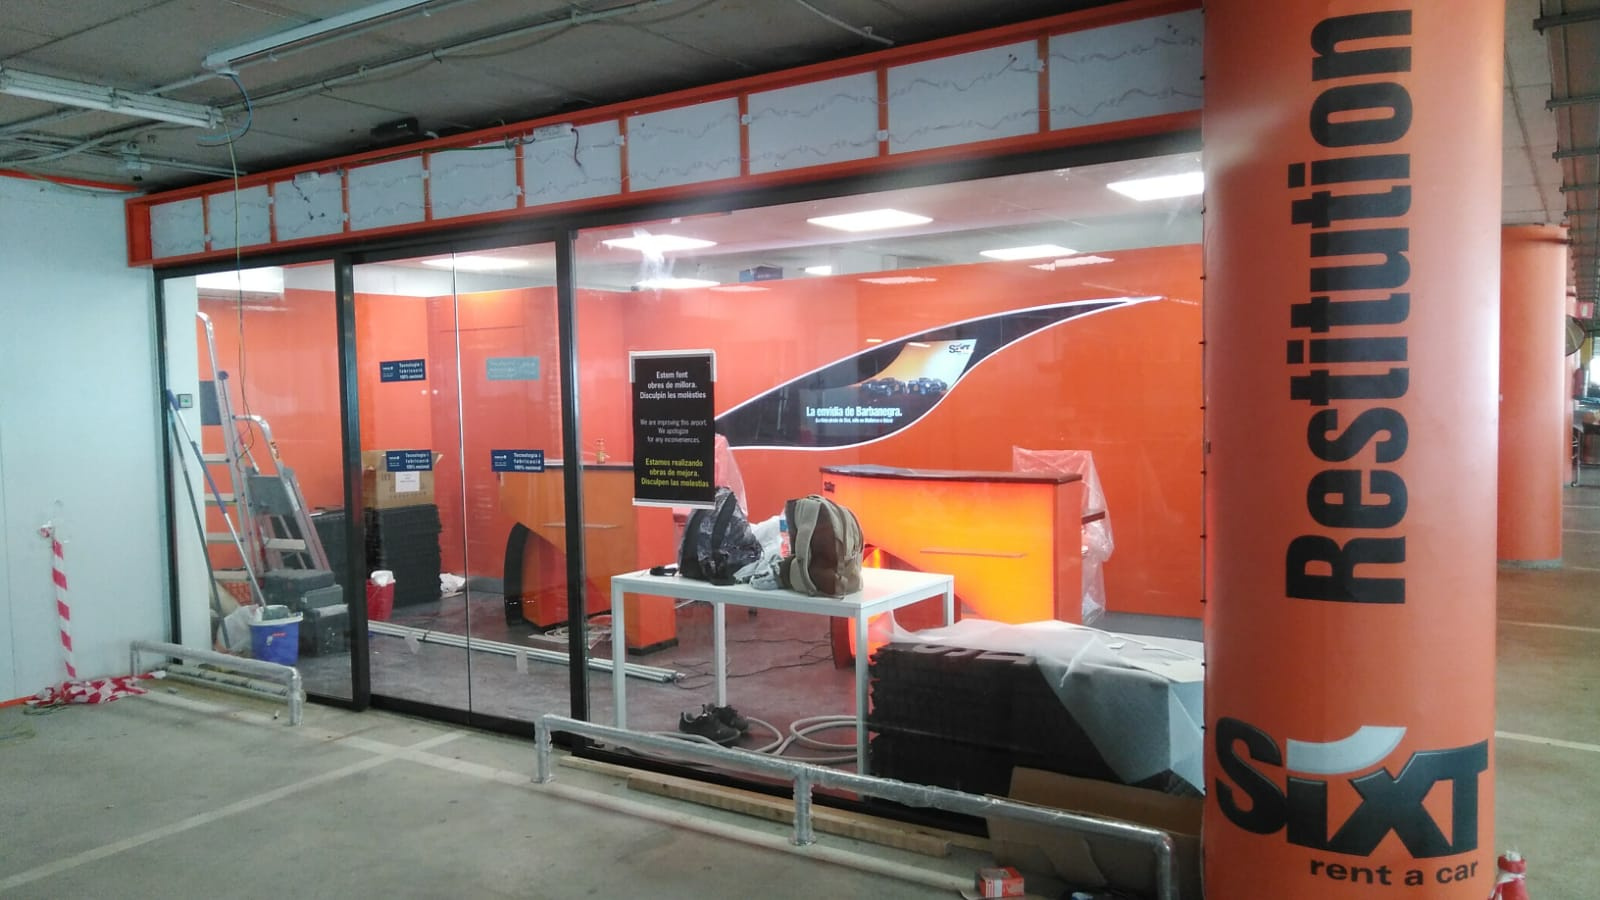 sixt t1 parking reforma 11